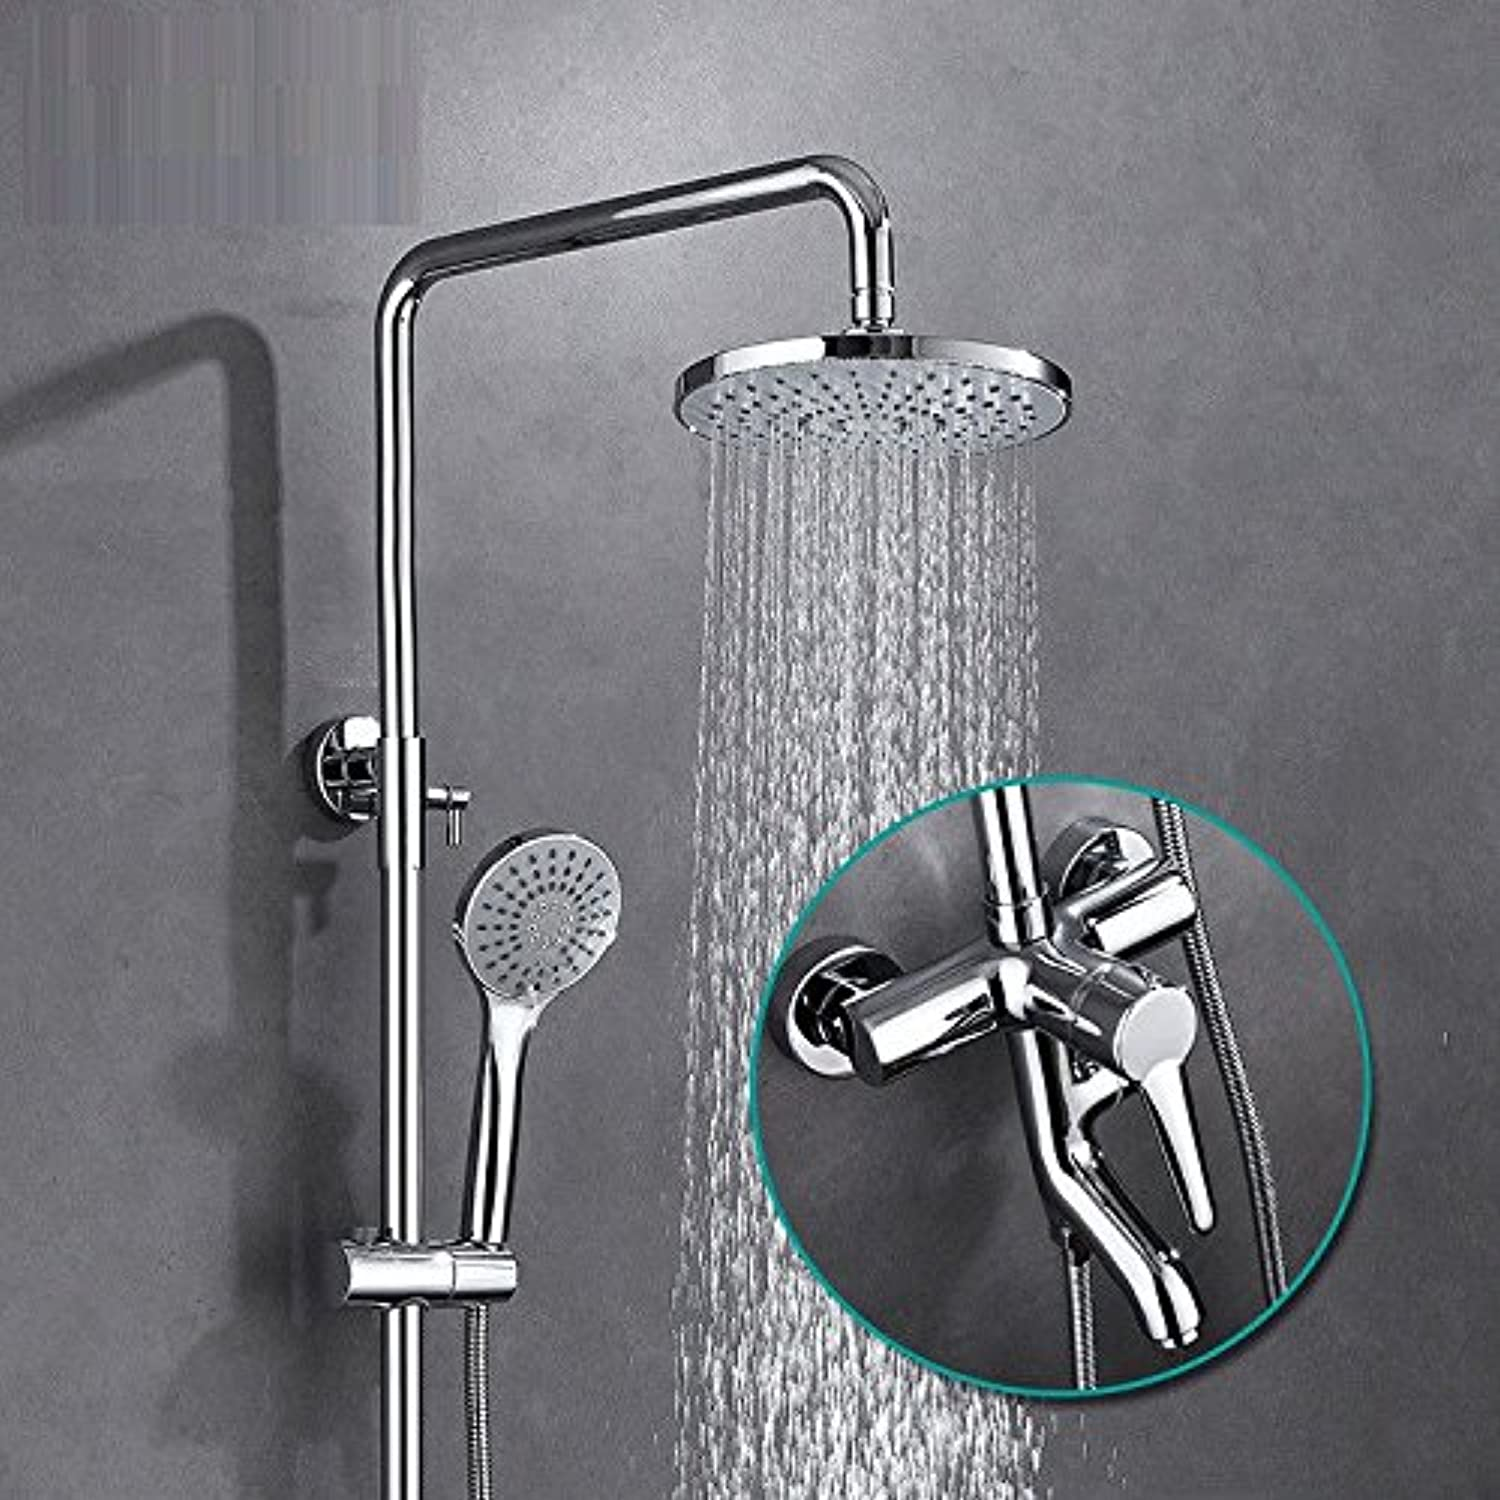 Lalaky Taps Faucet Kitchen Mixer Sink Waterfall Bathroom Mixer Basin Mixer Tap for Kitchen Bathroom and Washroom Retro Copper Mixing Valve Stainless Steel Booster Nozzle Can Be Raised and Lowered